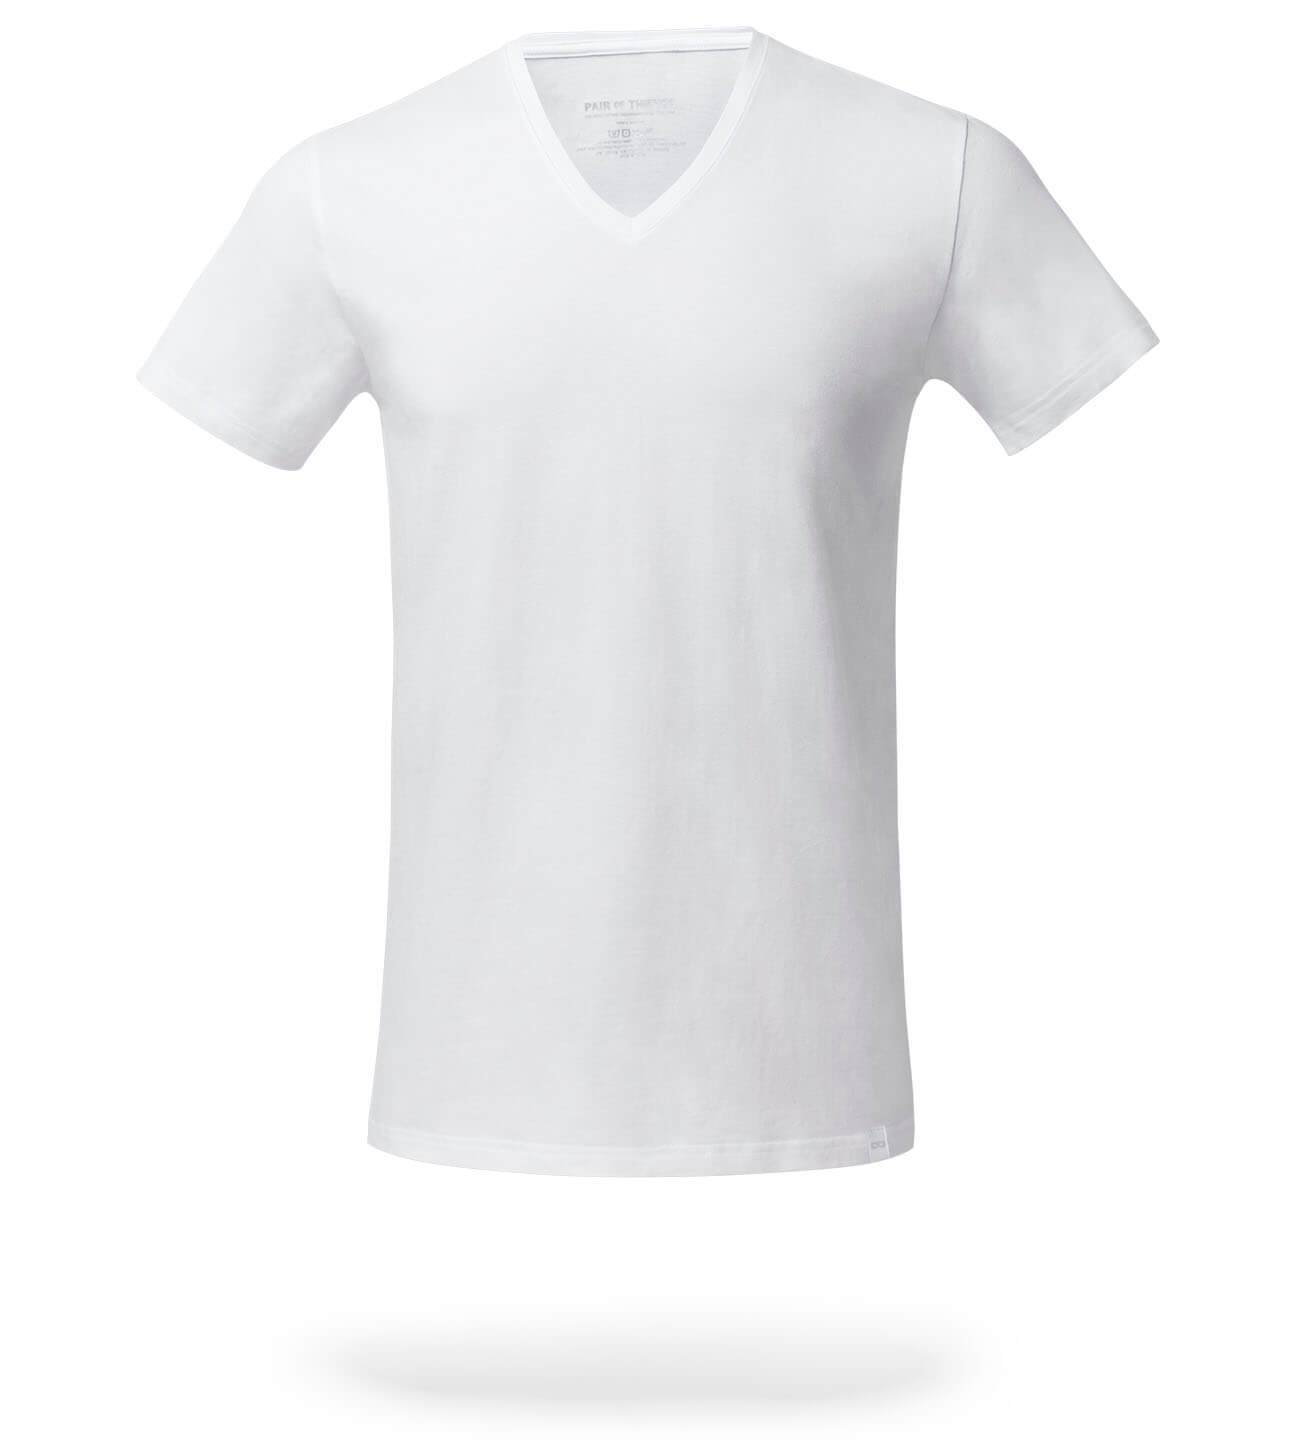 SP17_UNDERSHIRT_FRONT_WHITE_V